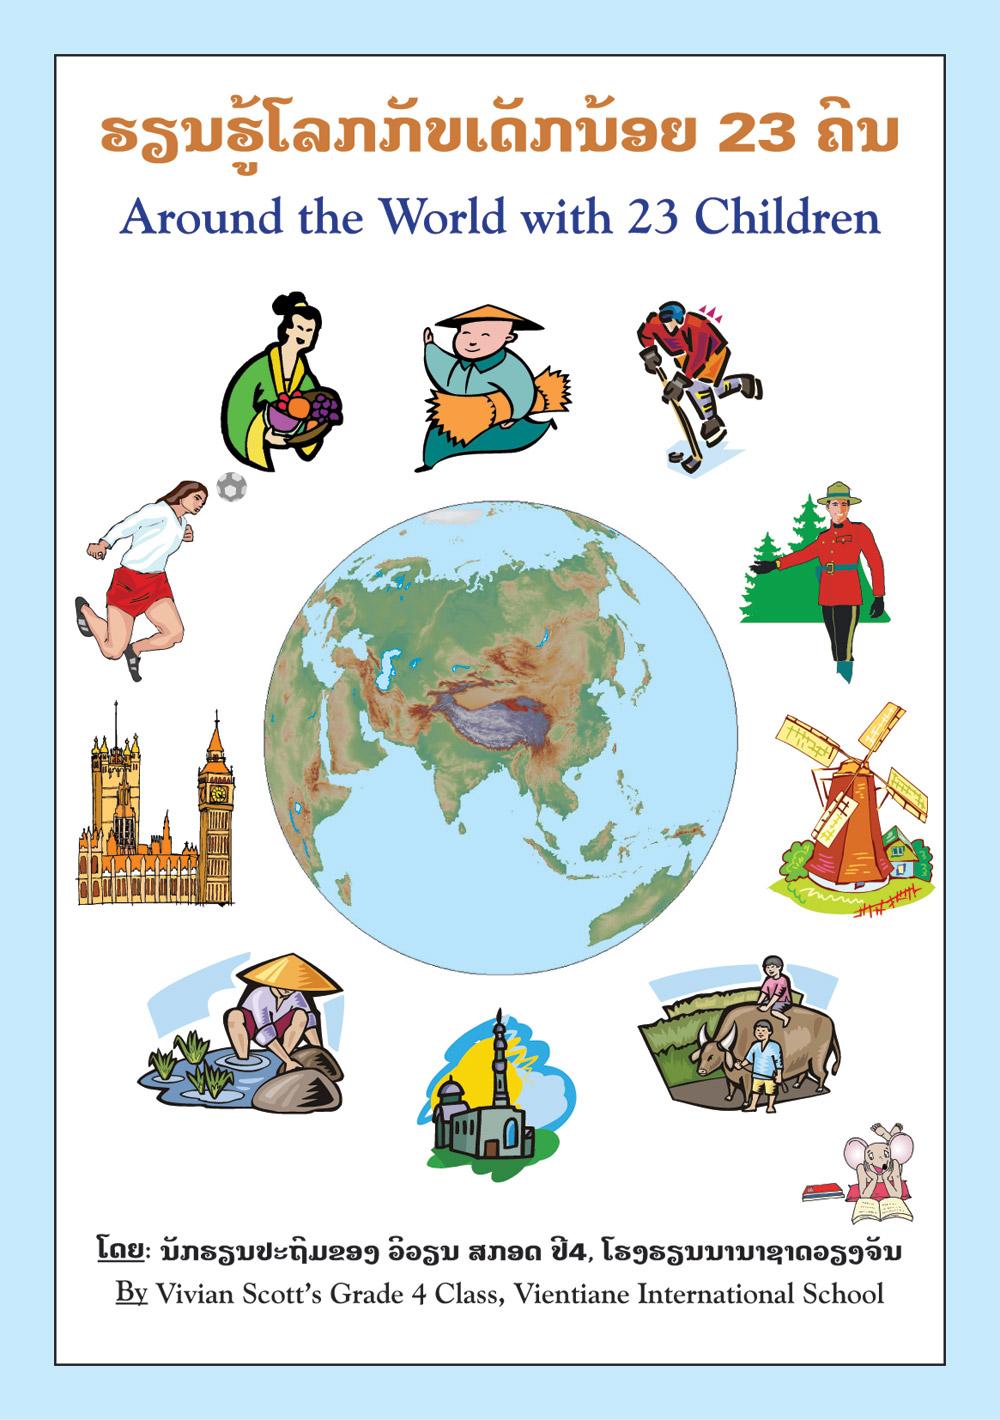 Around the World with 23 Children large book cover, published in Lao language